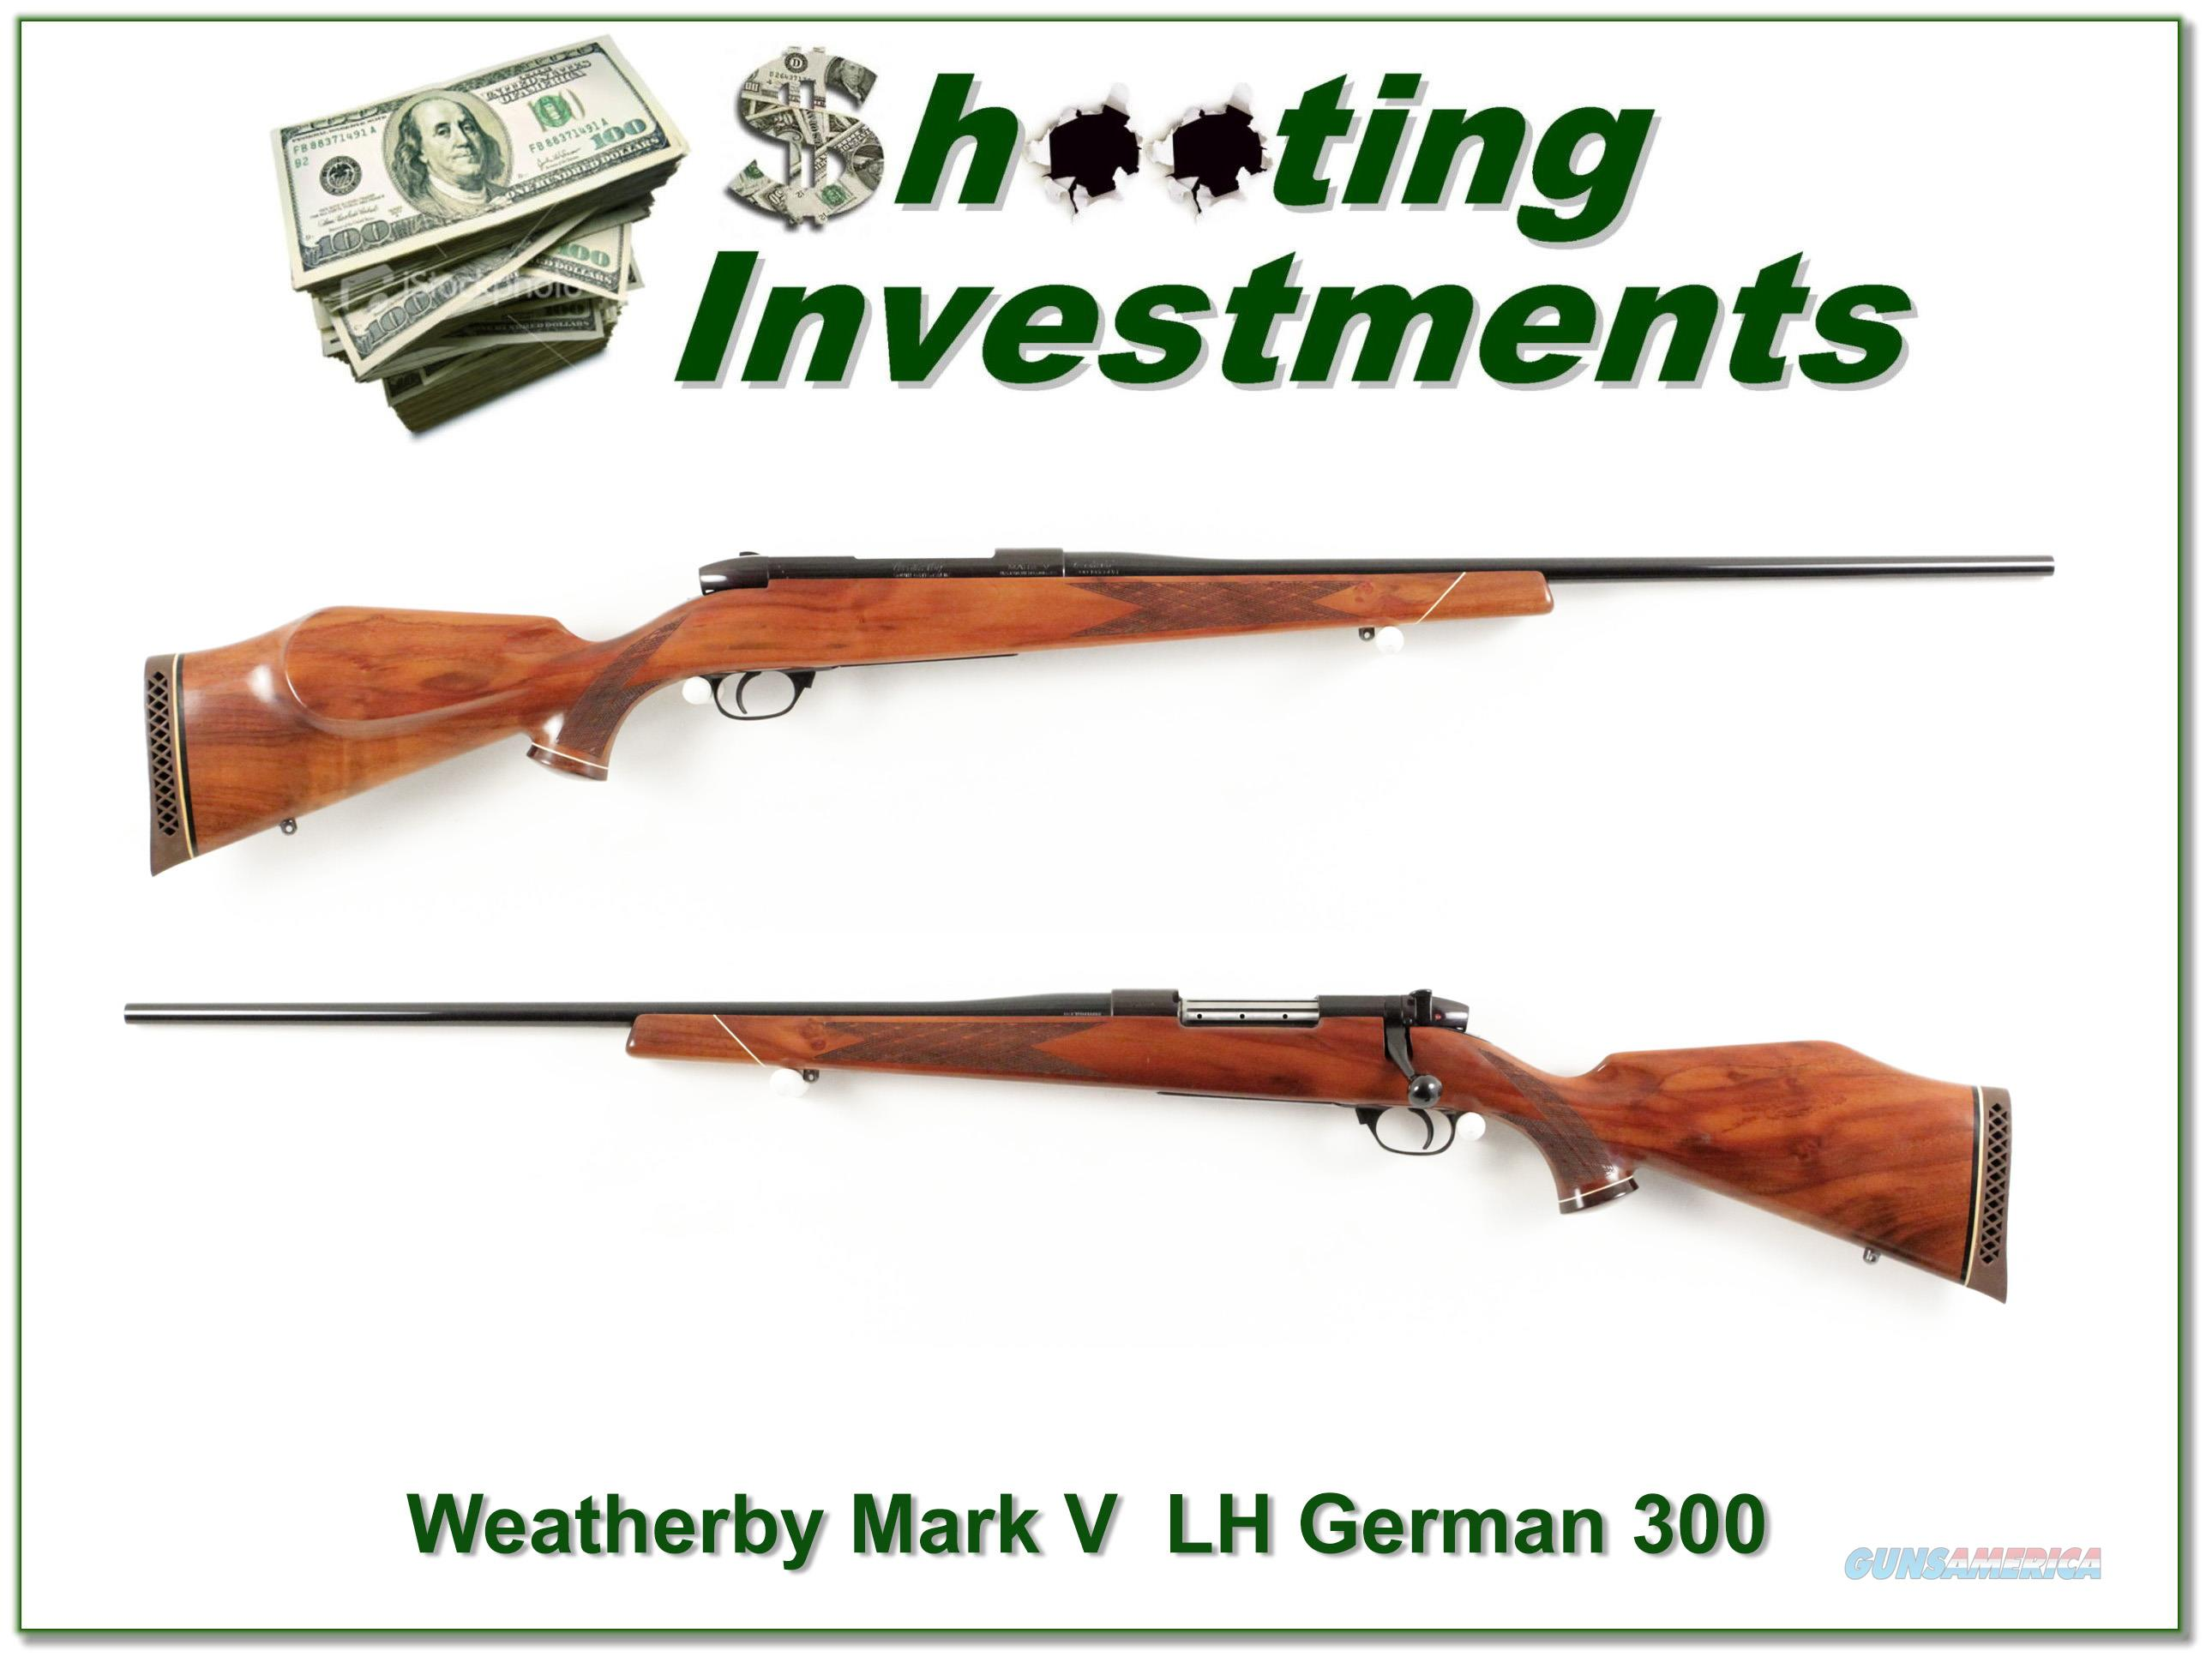 Weatherby Mark V Left Handed German 300  Guns > Rifles > Weatherby Rifles > Sporting